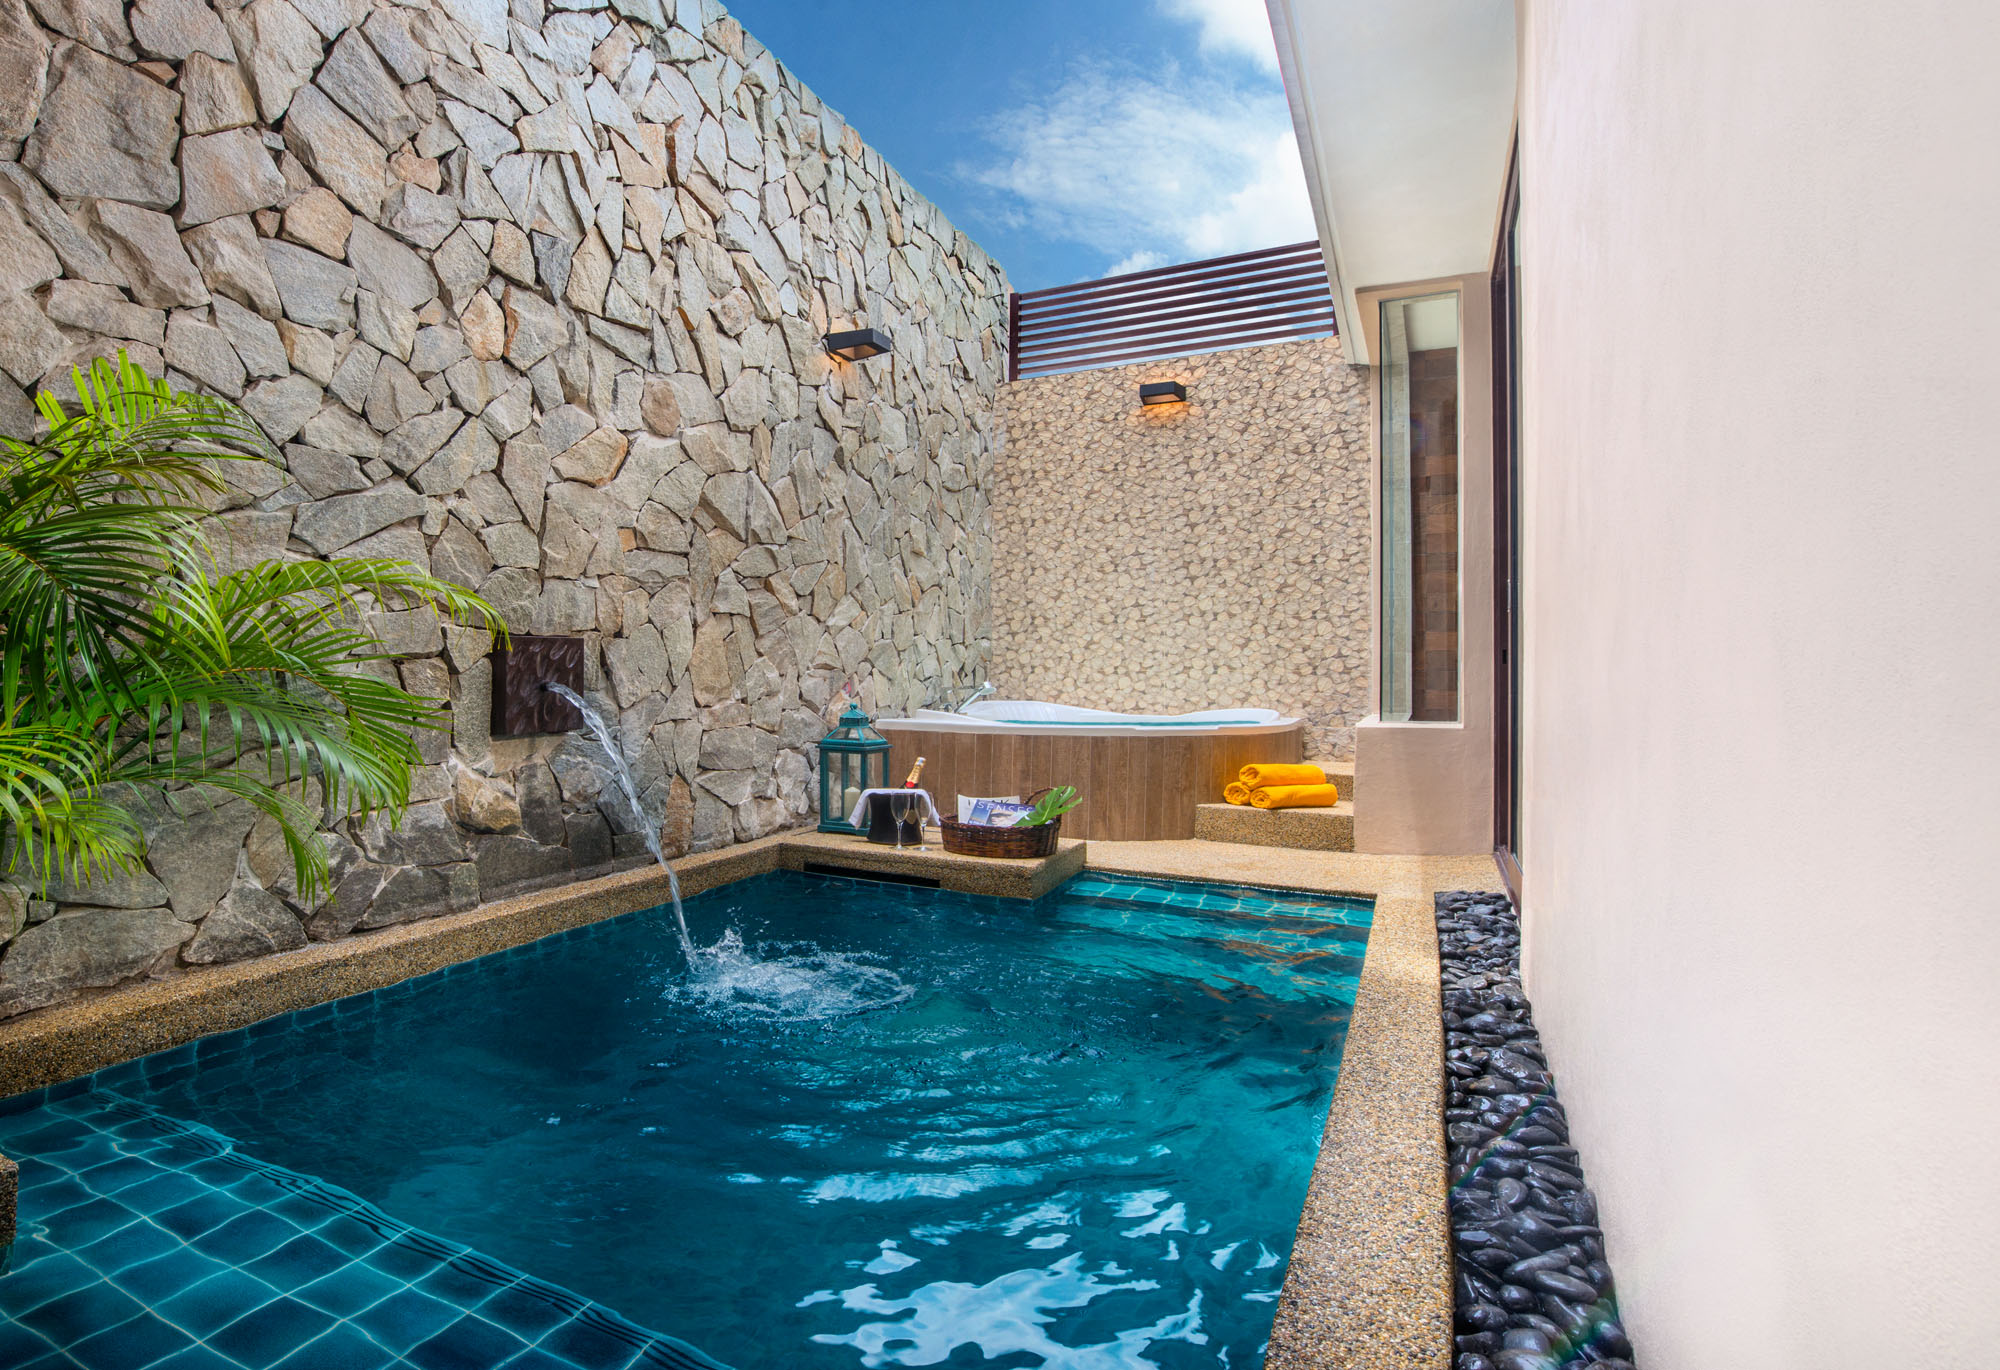 The Banjaran Hotsprings Retreat, a haven of bespoke holistic wellness